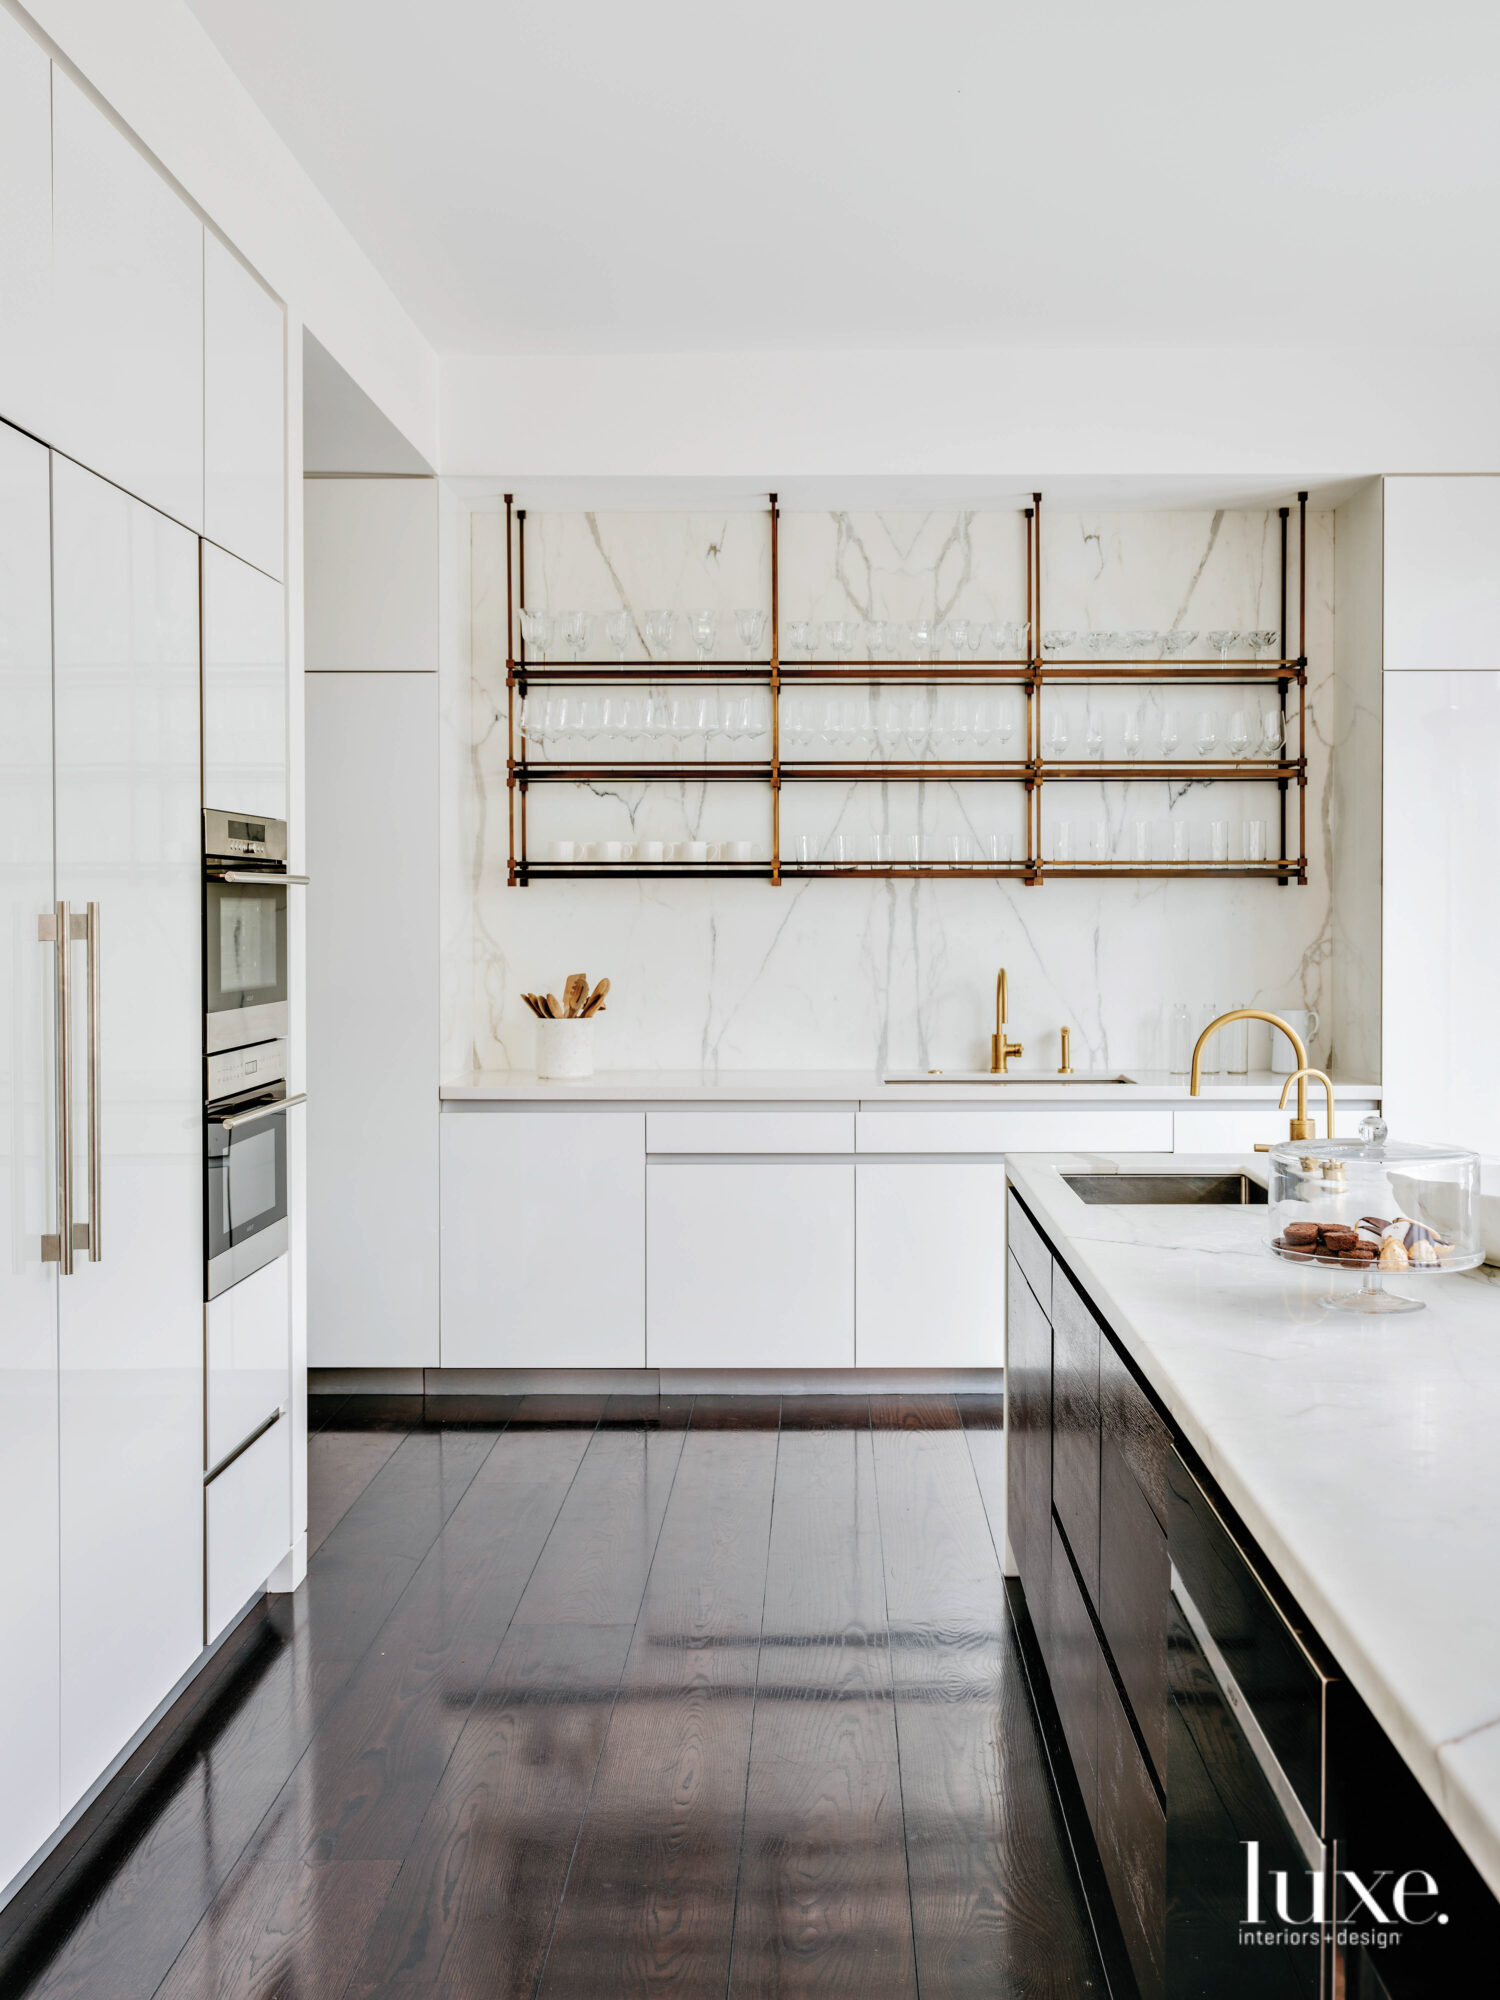 A kitchen features open shelving.